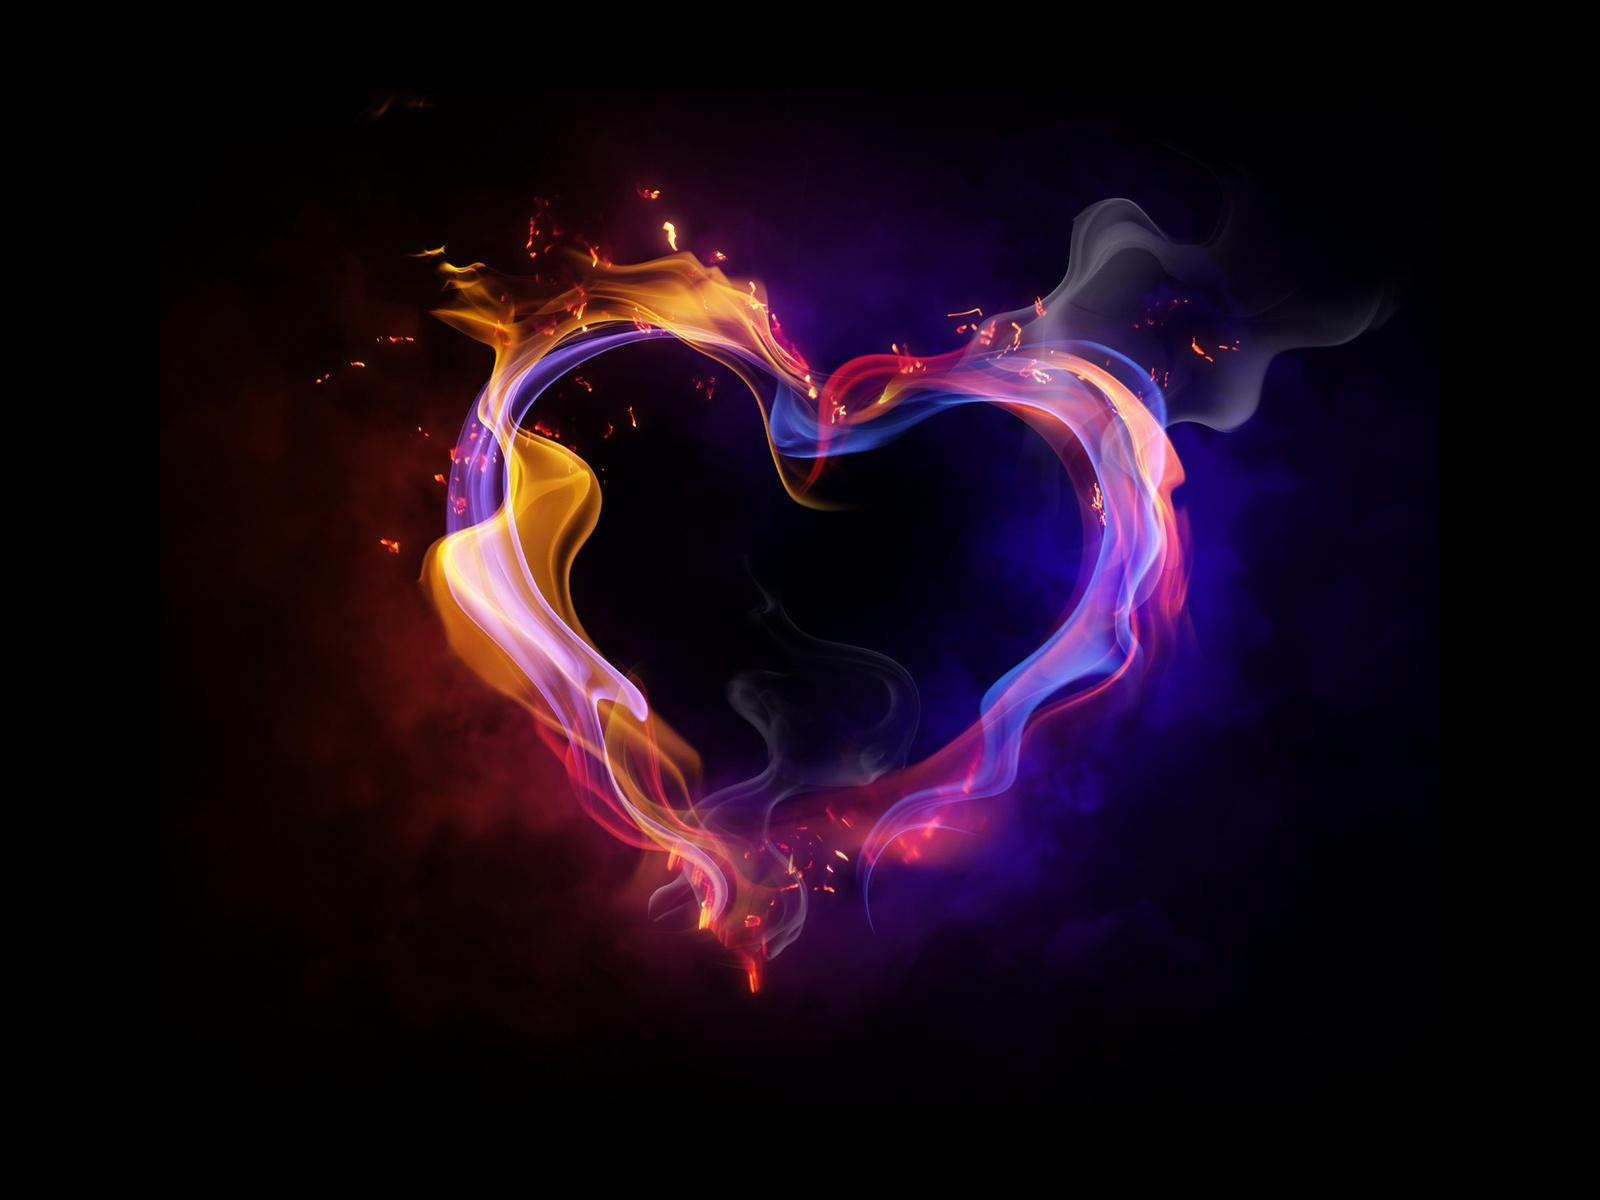 i love ♥ you heart HD wallpapers - I ♥ You images | Valentine's Day